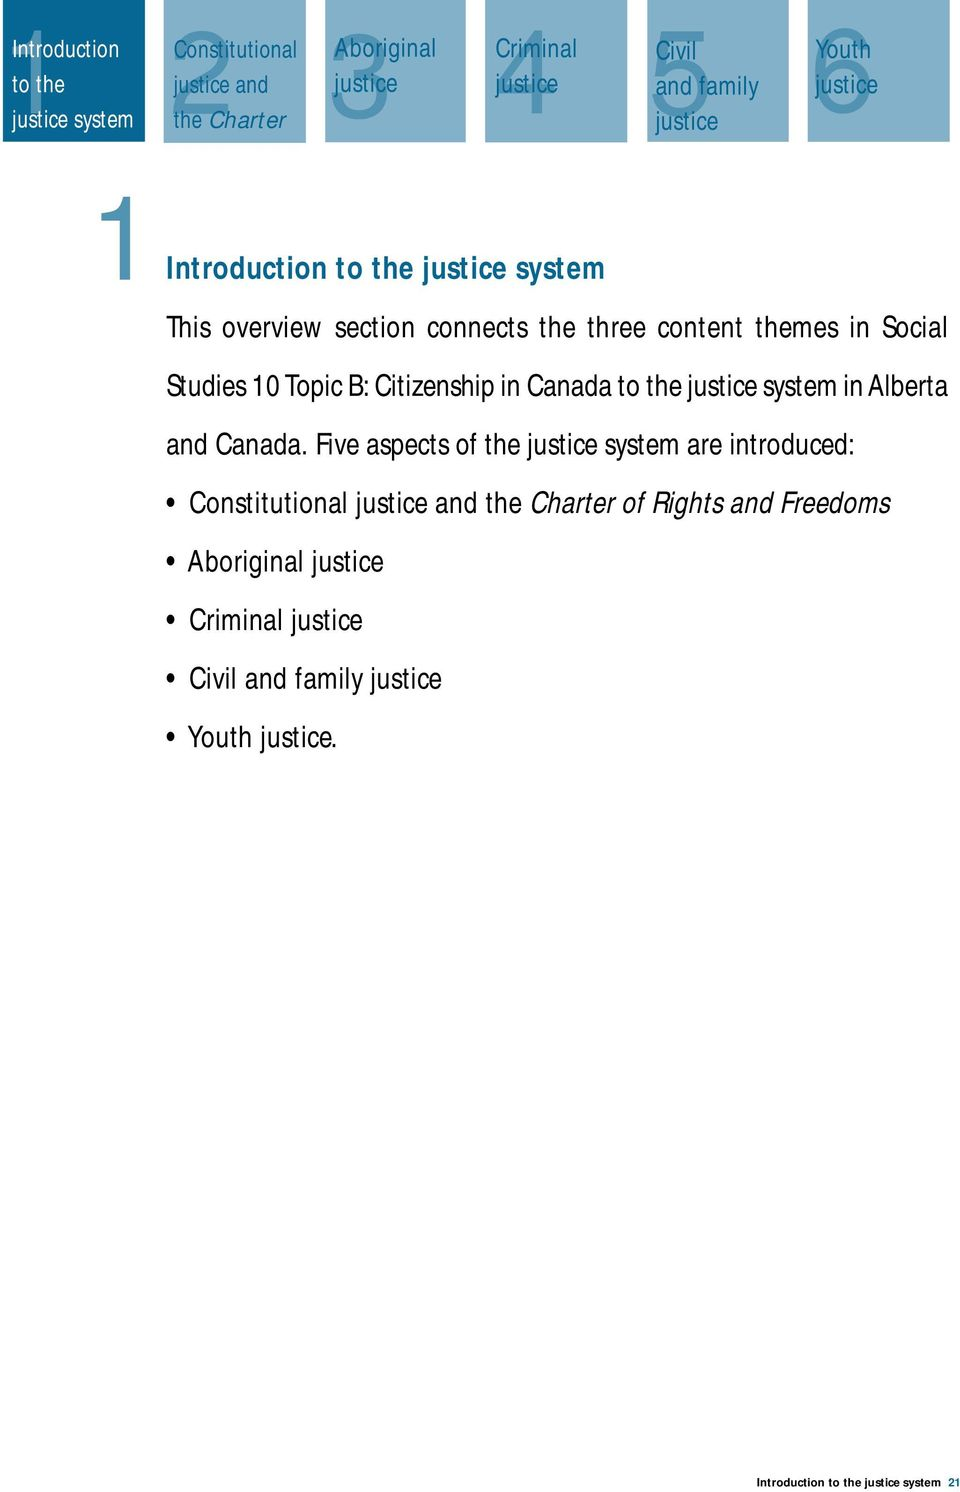 Citizenship in Canada to the justice system in Alberta and Canada.